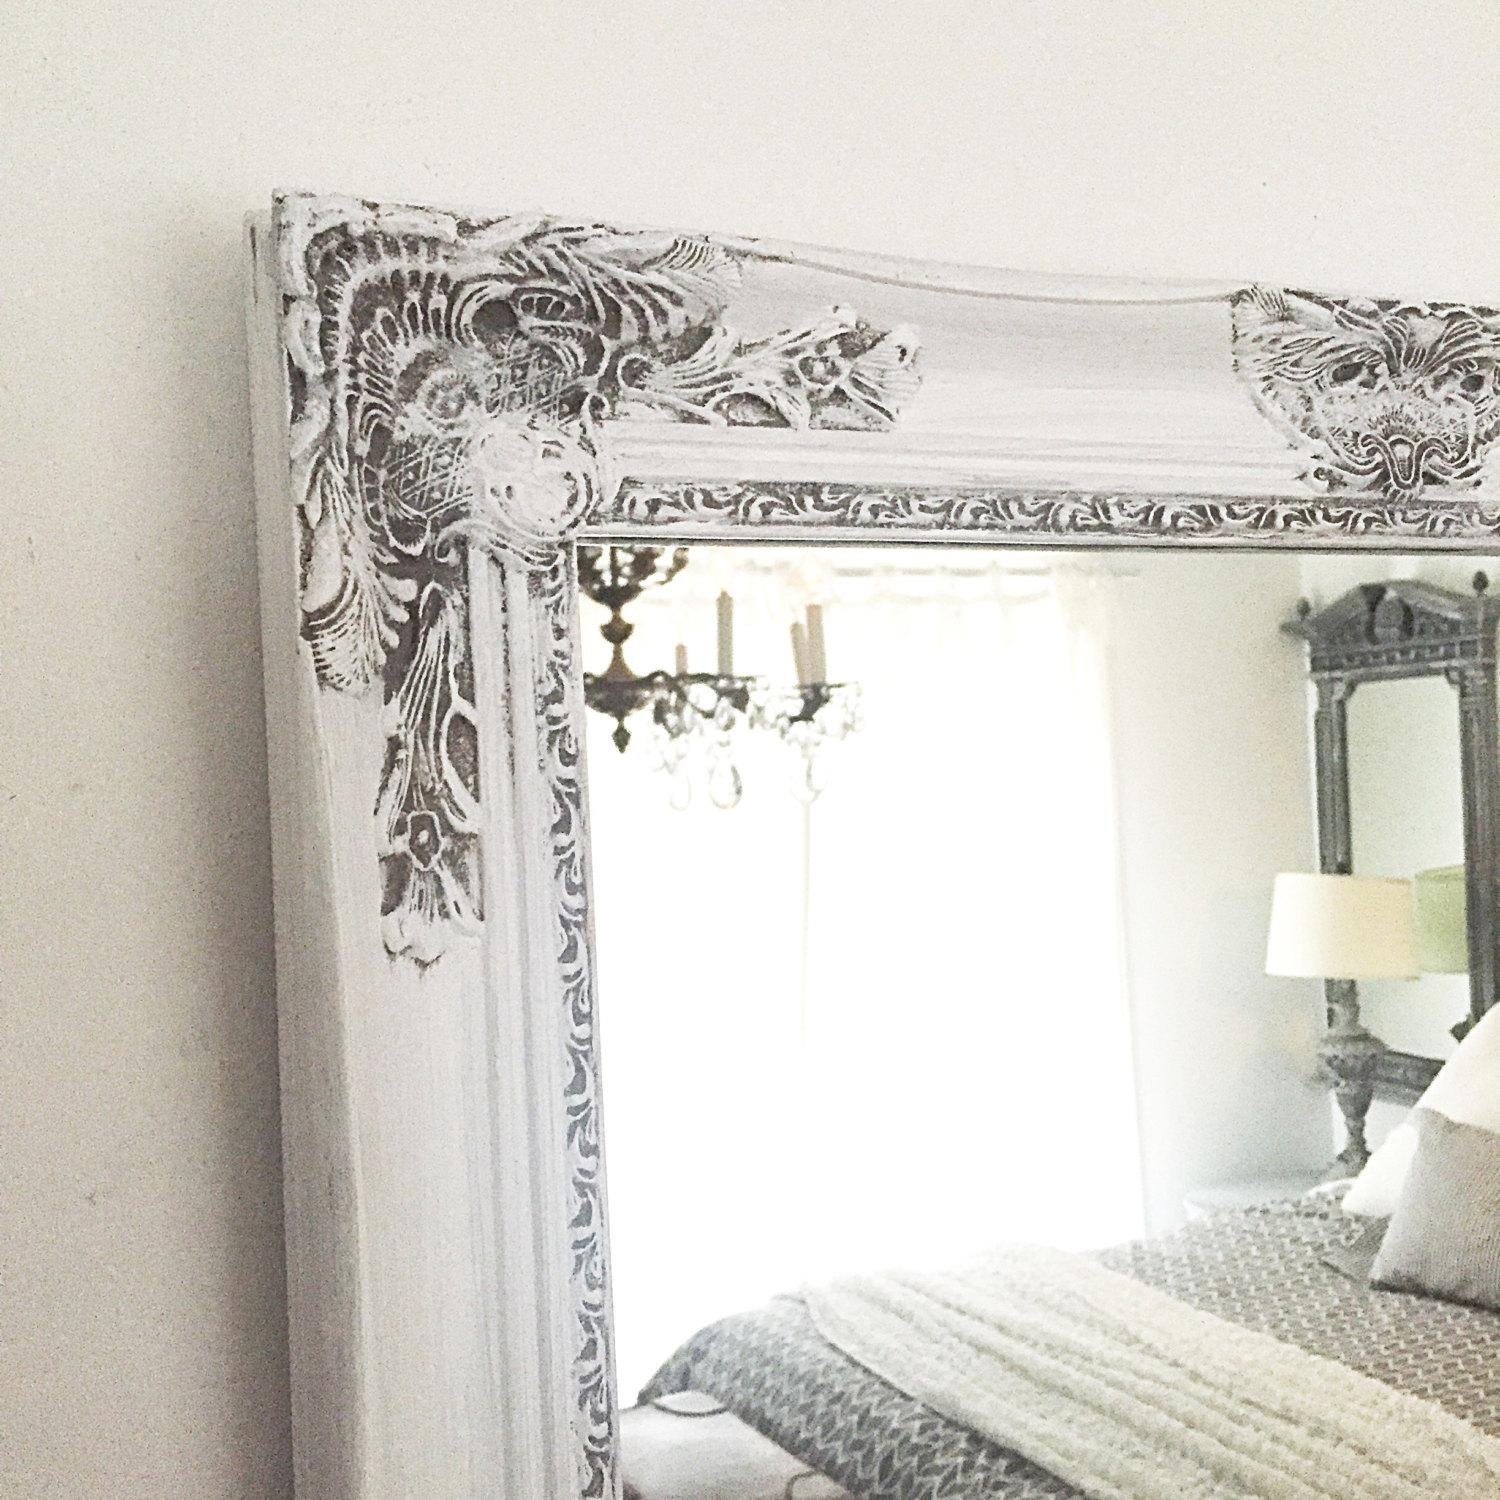 Navy Ornate Bathroom Mirrors | Home Inside Ornate Bathroom Mirror (Image 12 of 20)